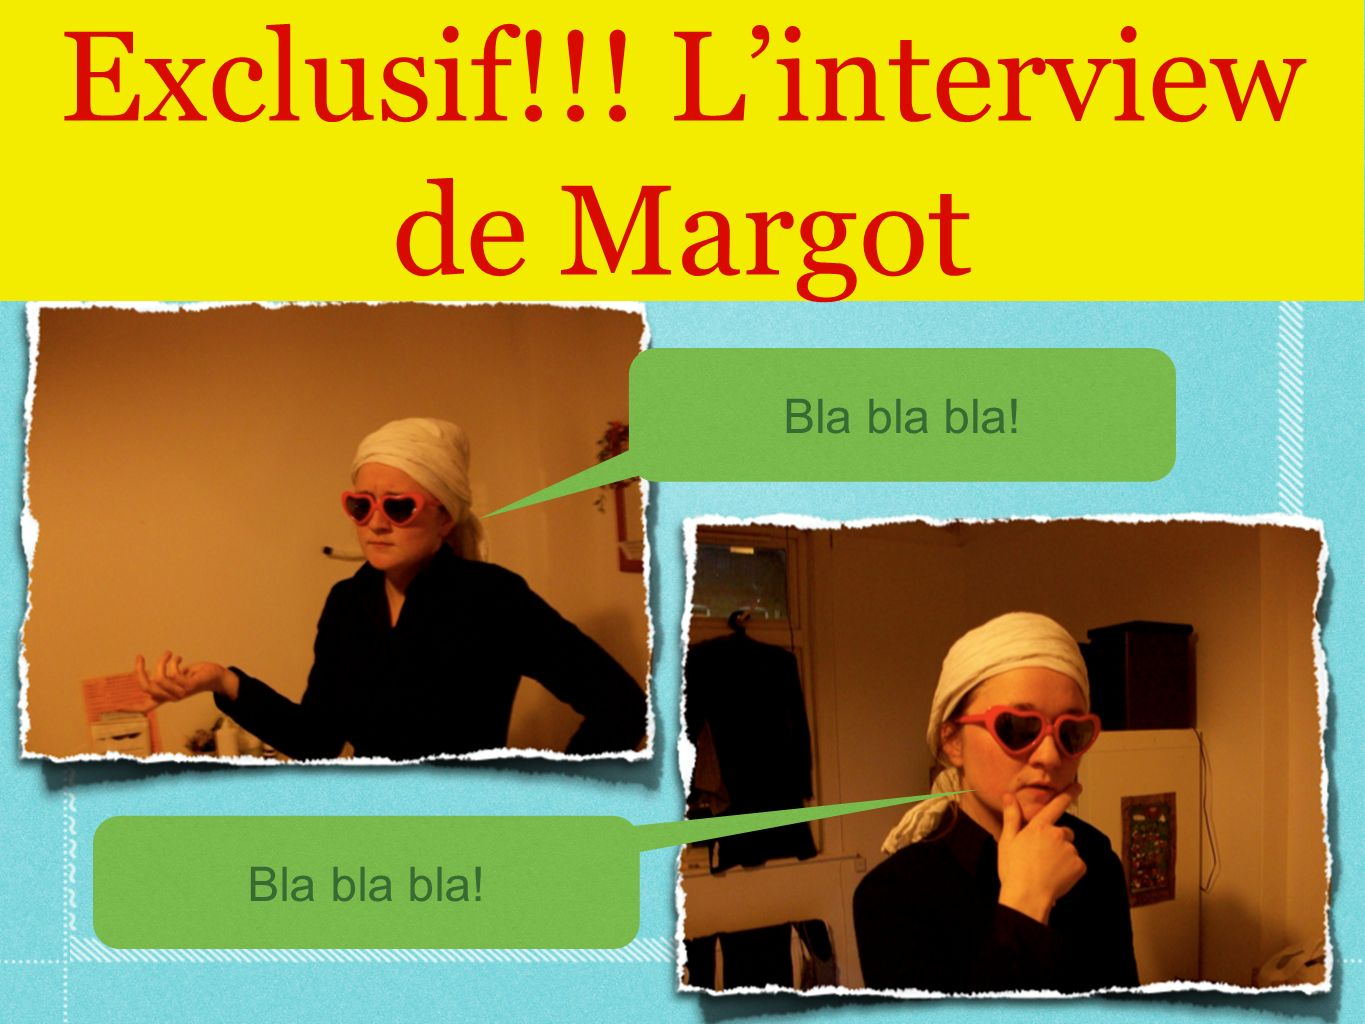 Exclusif!!! Linterview de Margot Bla bla bla!